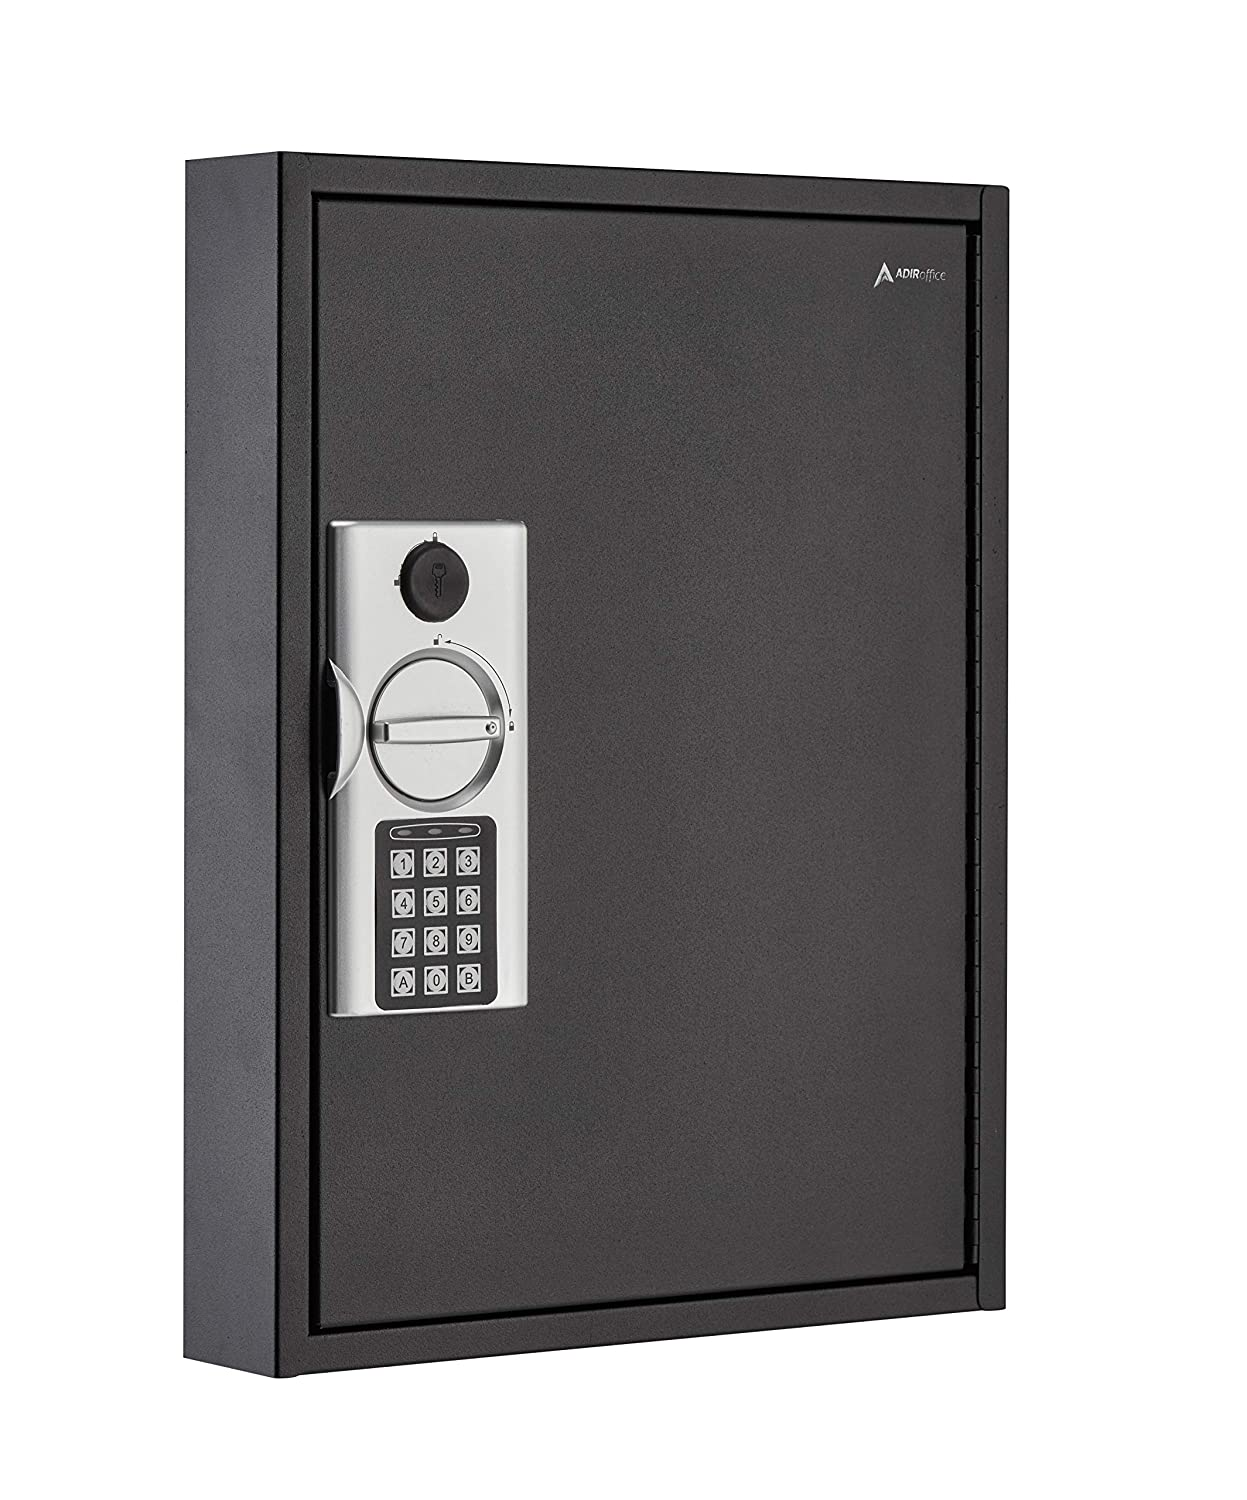 AdirOffice 60 Hooks Key Cabinet with Digital Lock - Heavy Duty Secured Storage, Steel- Ideal for Homes Hotels Schools & Businesses (Black)